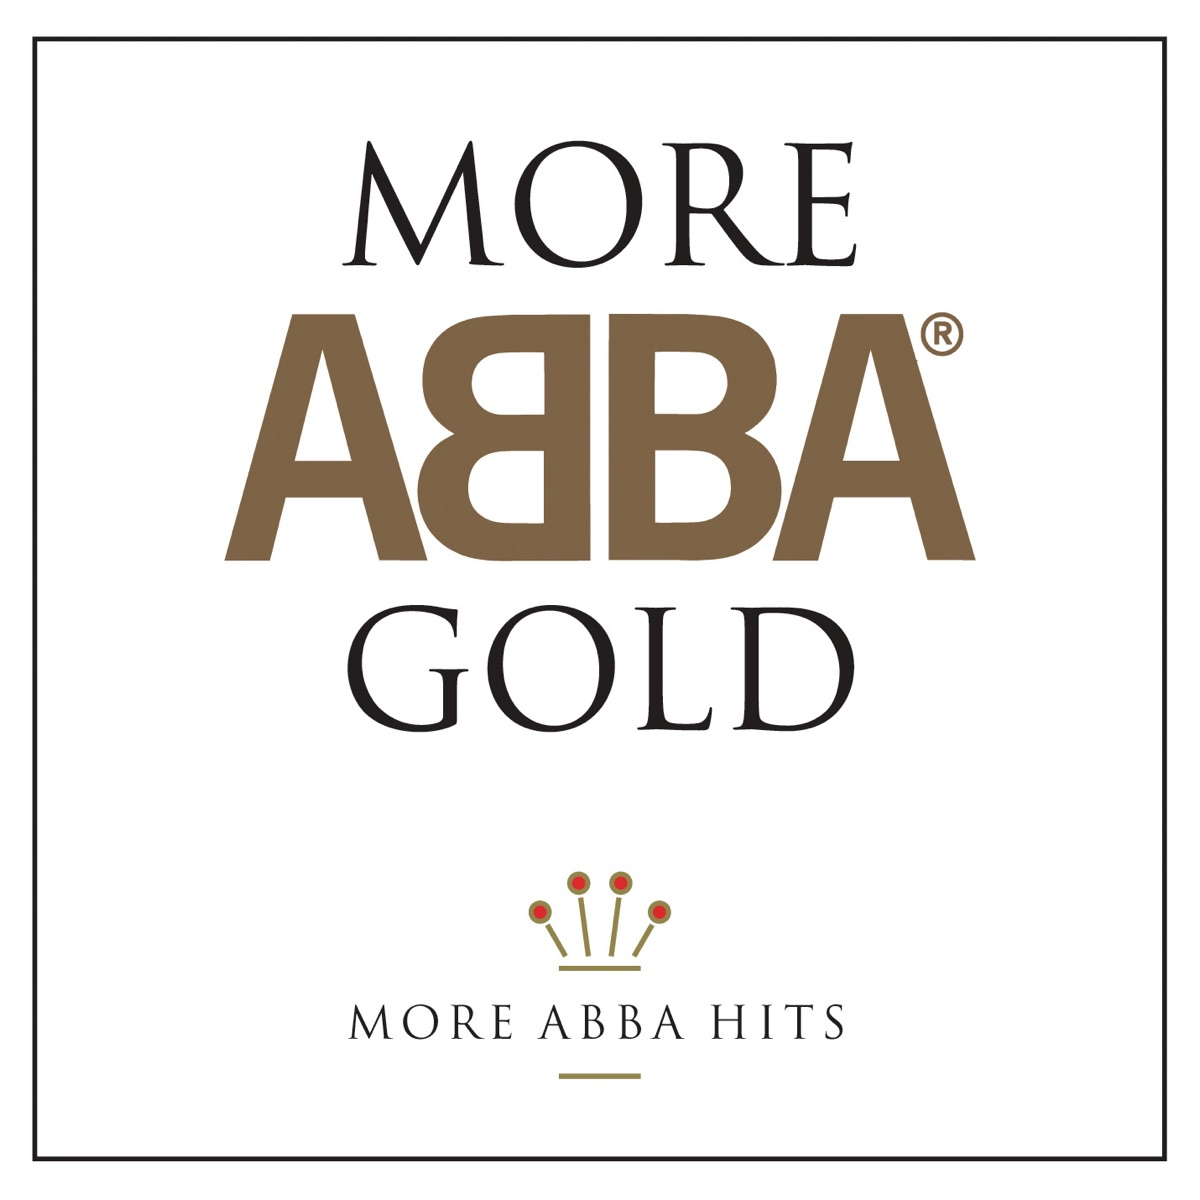 More ABBA Gold ABBA CD cover